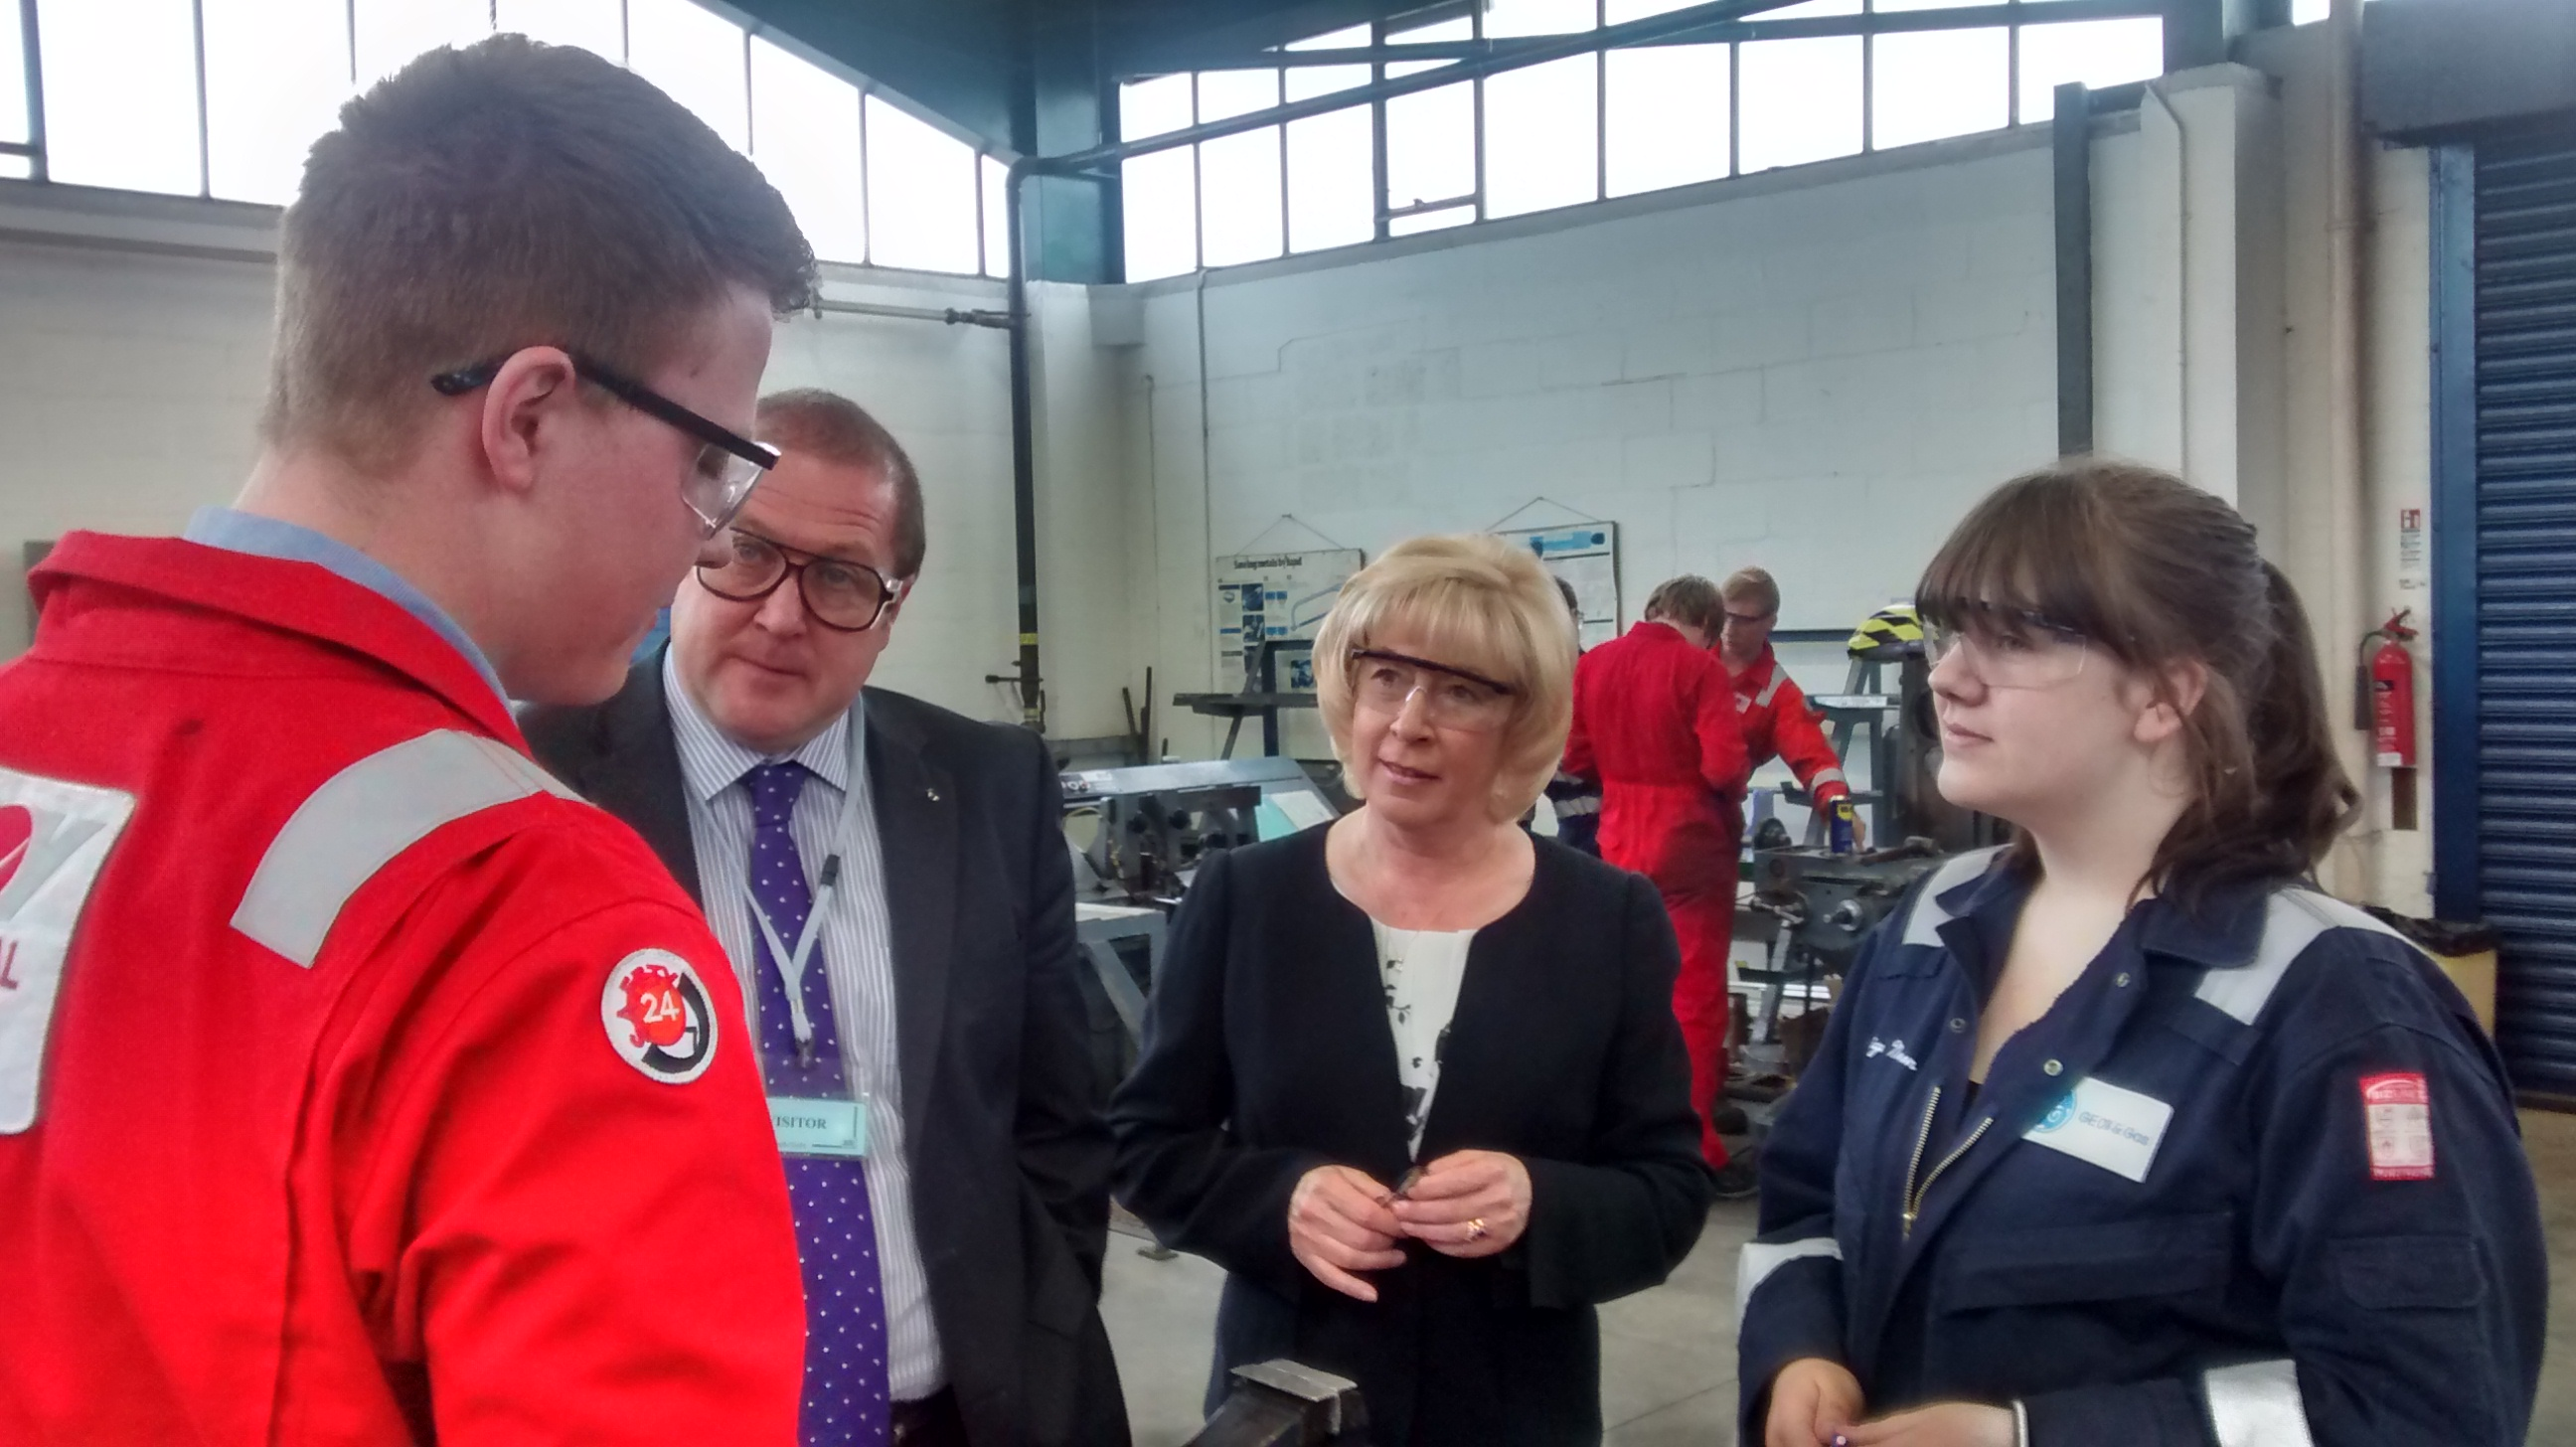 gd-scottish-apprenticeship-week-angus-training-group-roslyn-milne-skills-development-scotland